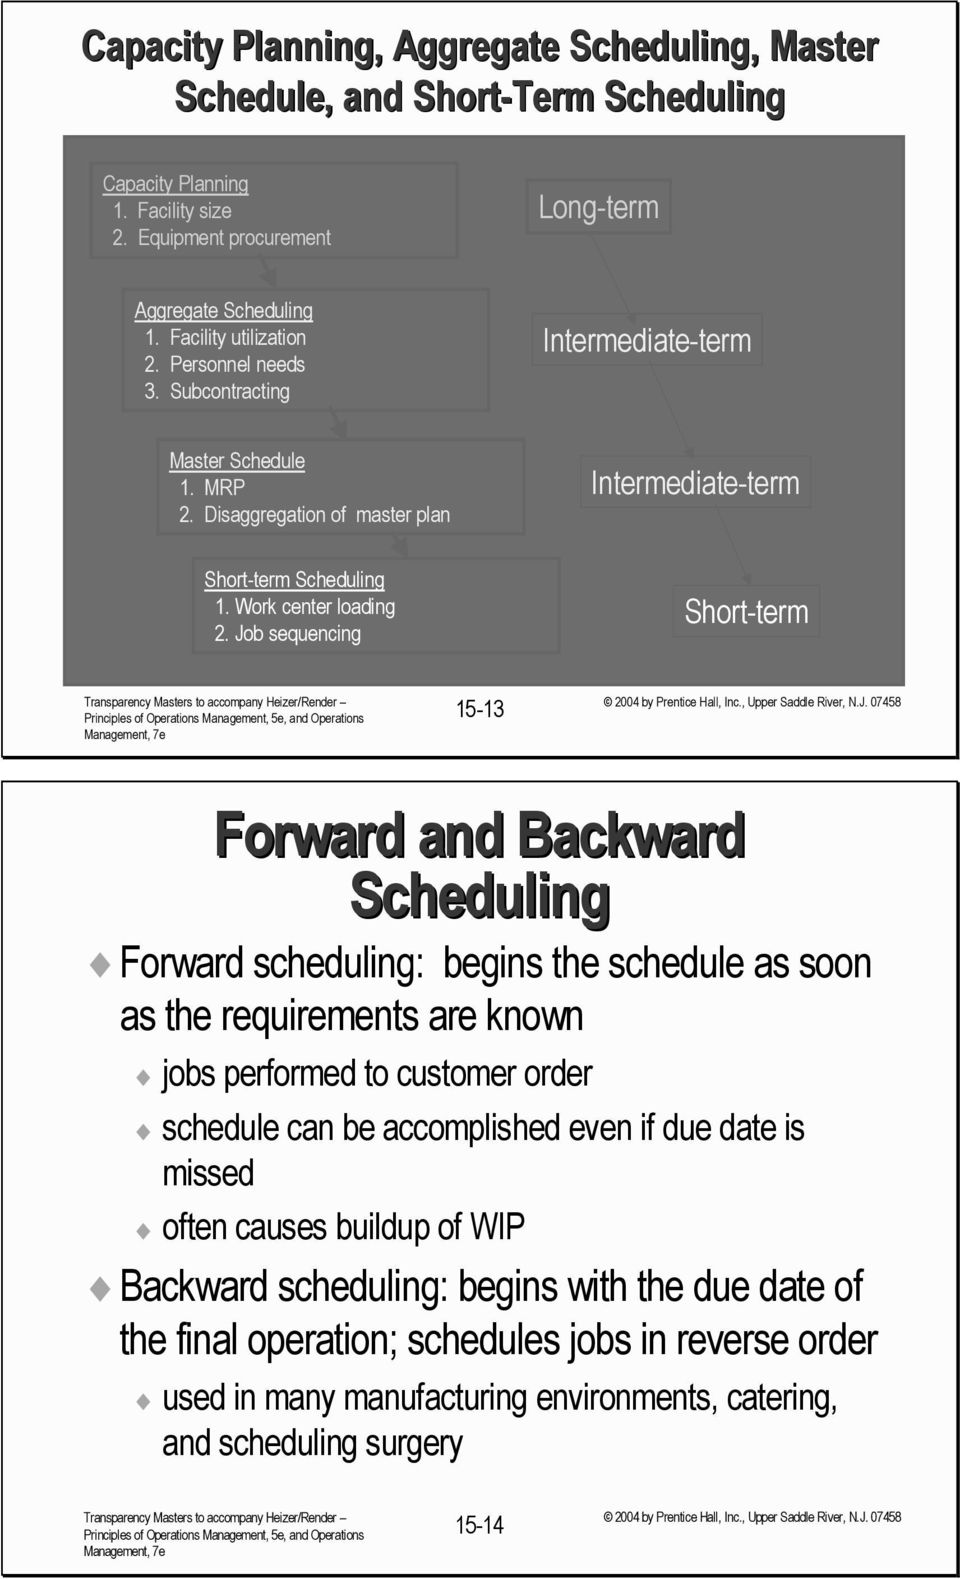 Job sequencing Short-term 15-13 Forward and ackward Scheduling Forward scheduling: begins the schedule as soon as the requirements are known jobs performed to customer order schedule can be